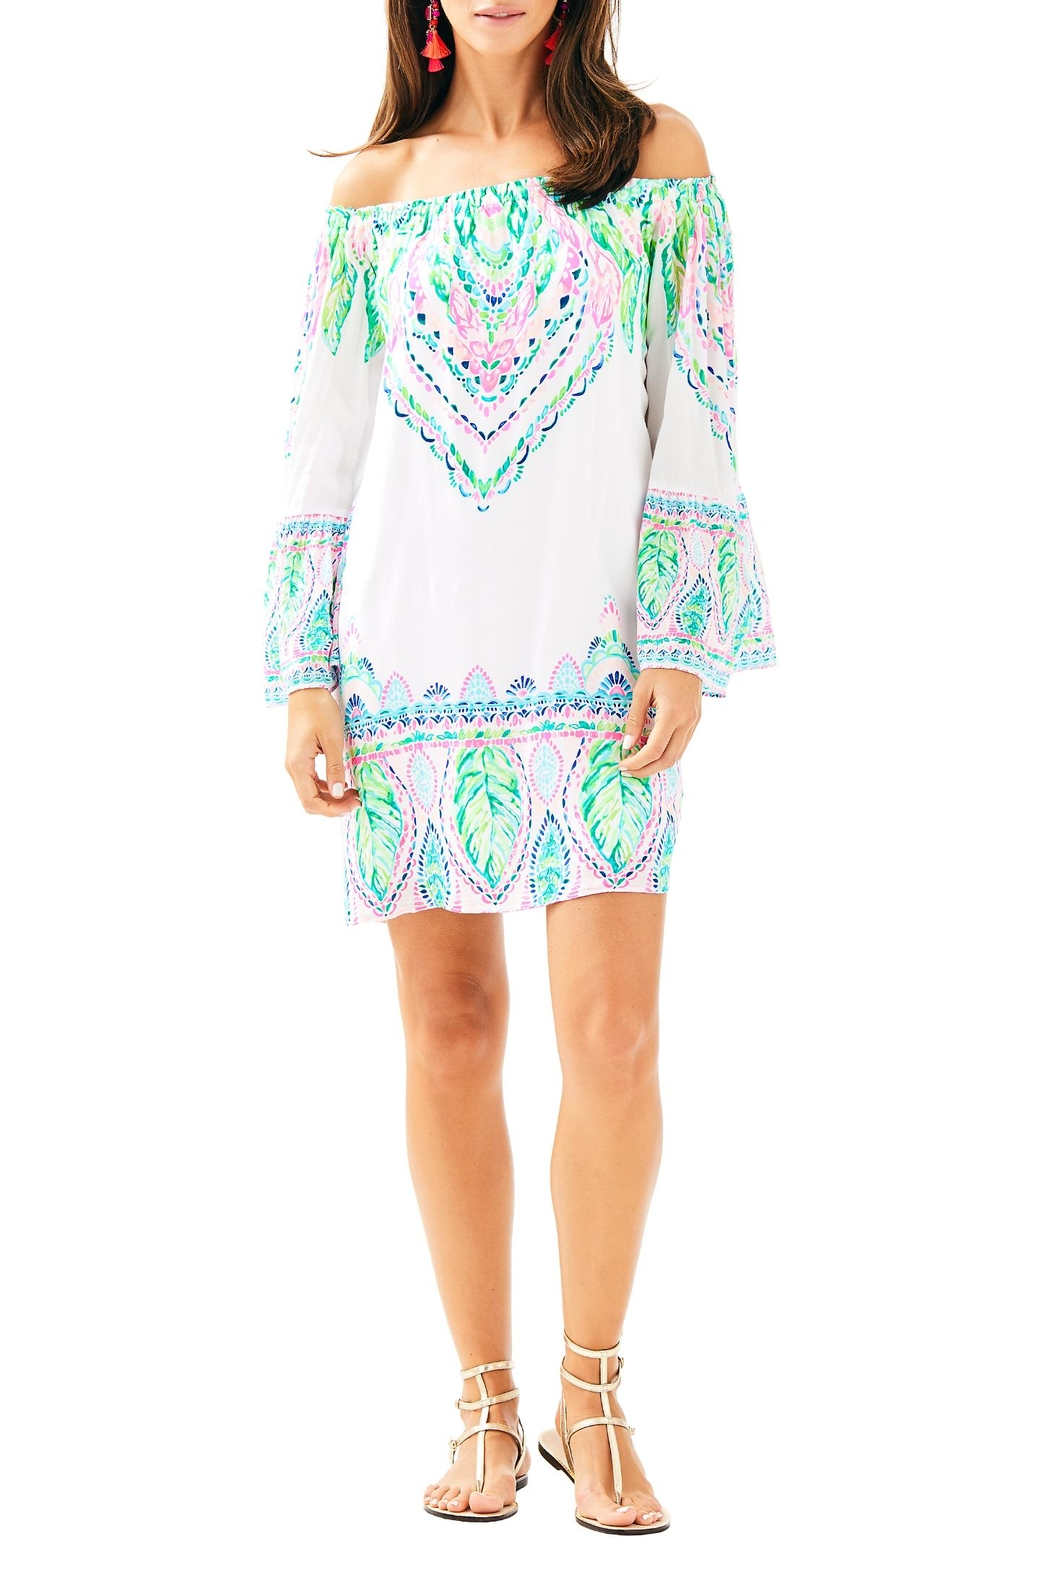 Lilly Pulitzer Nevie Dress From Sandestin Golf And Beach Resort By